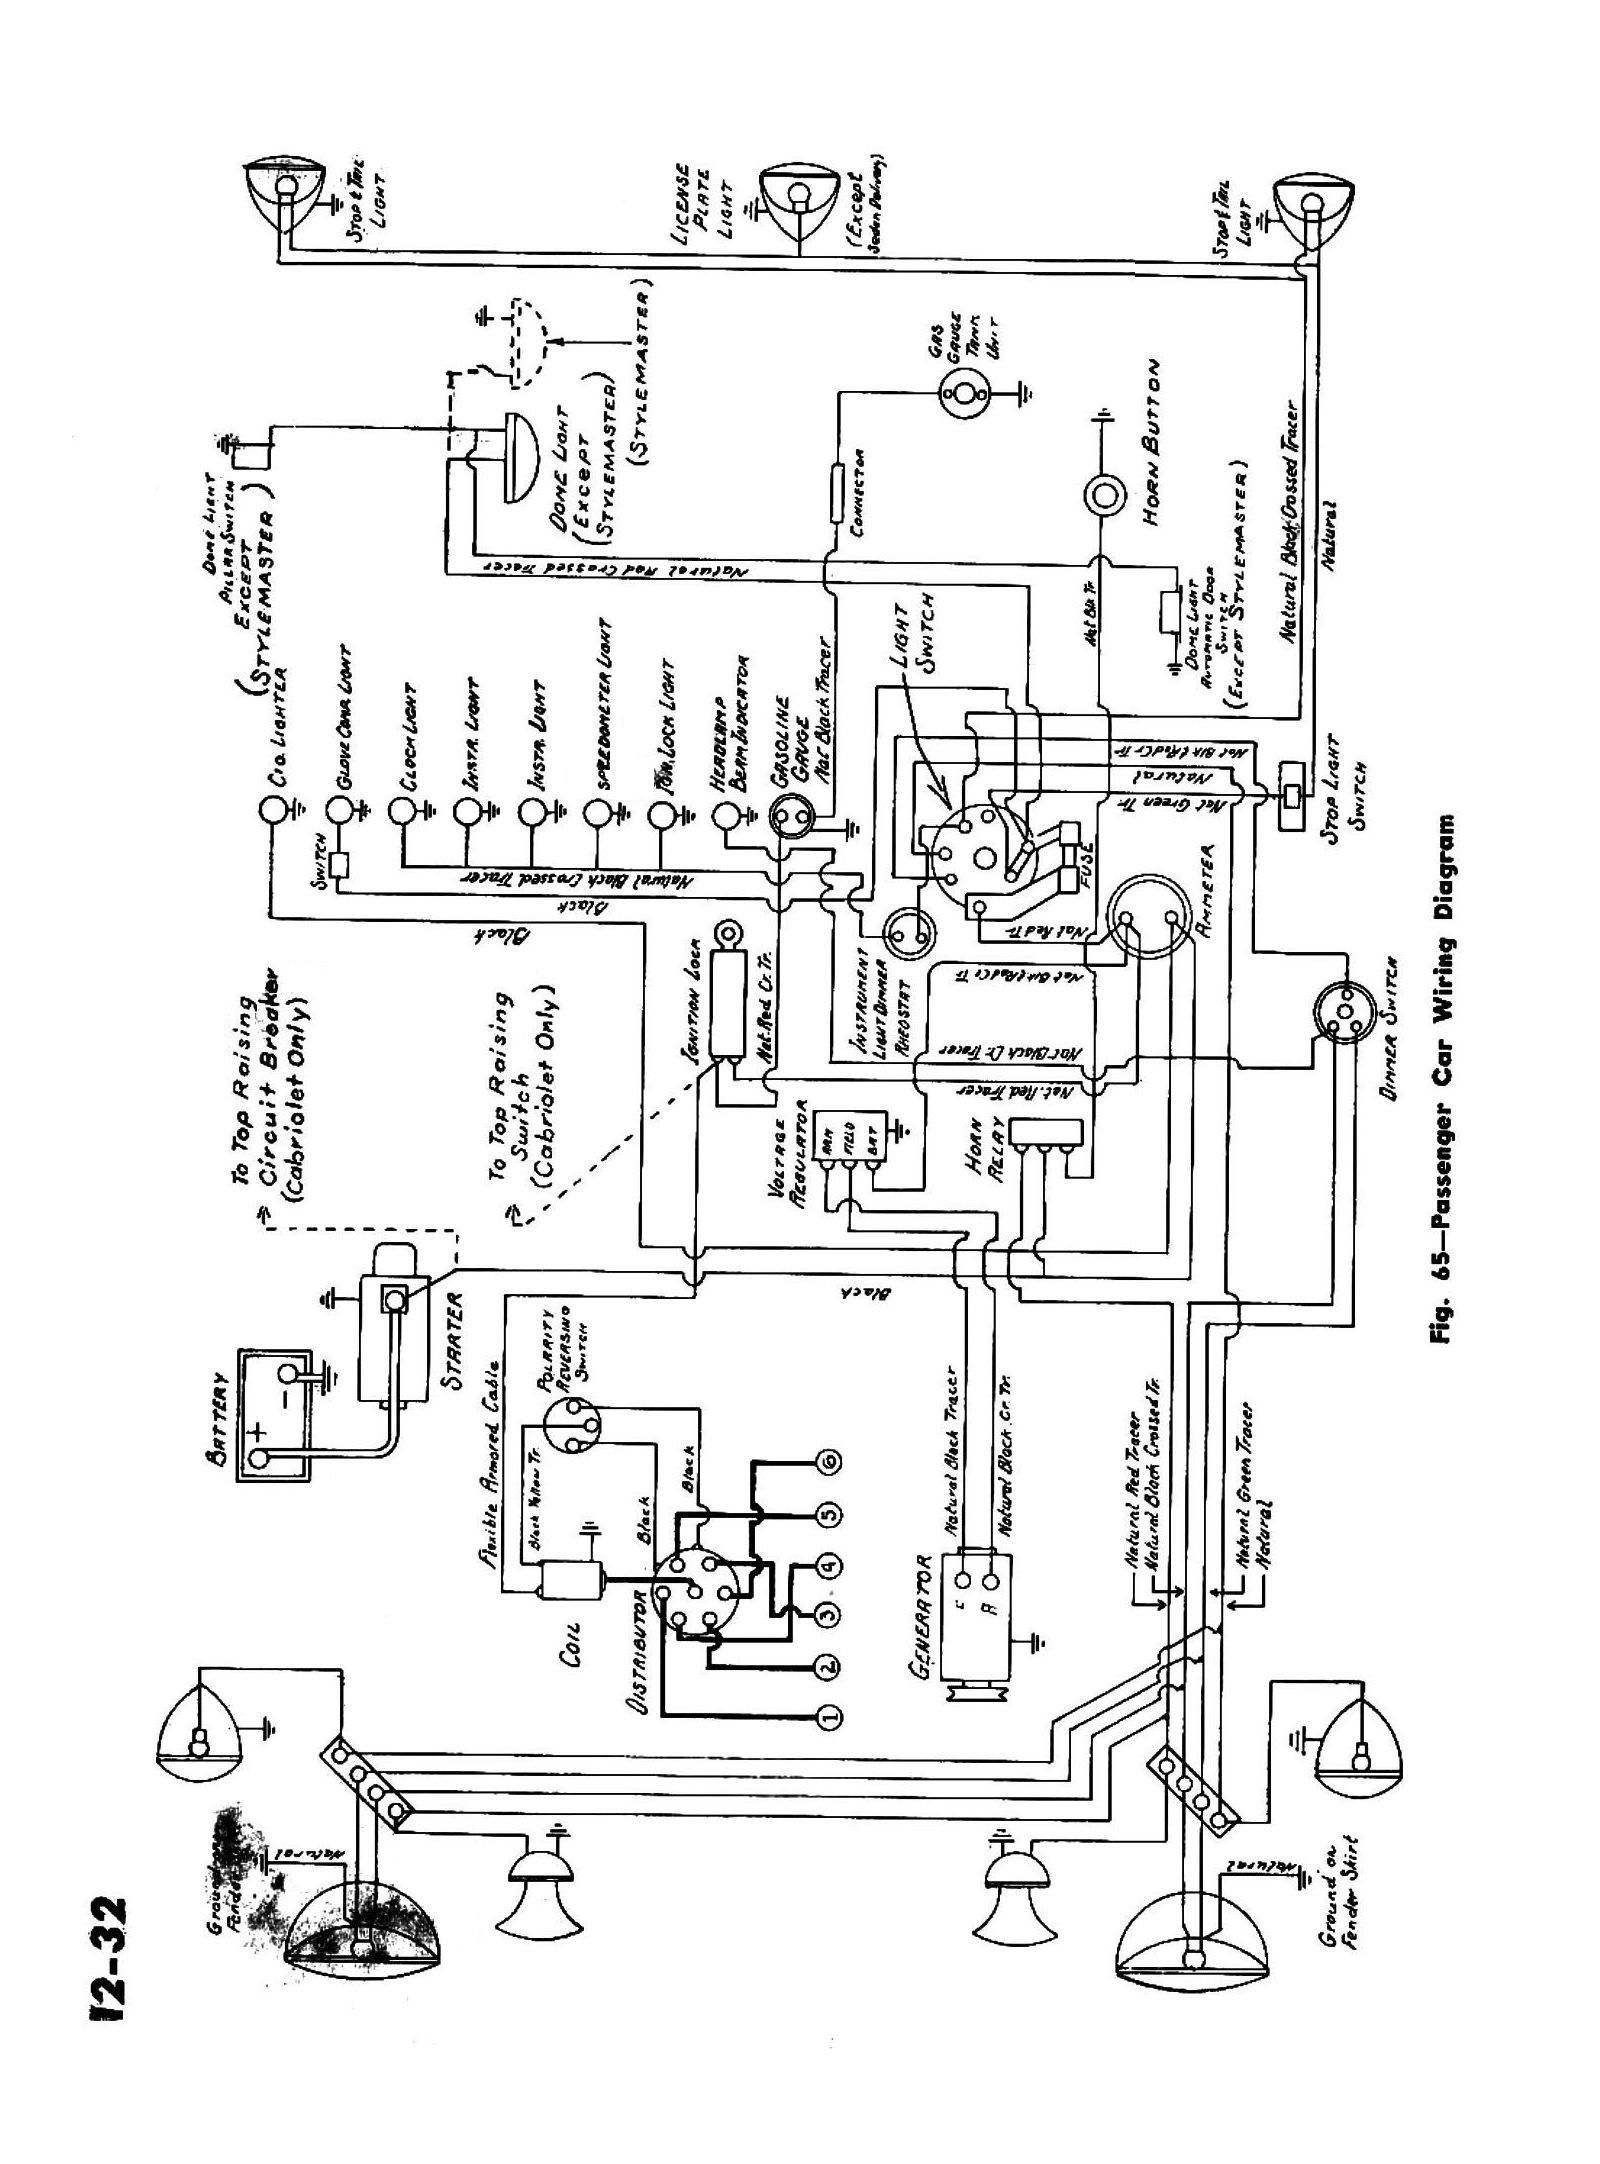 4400 International Truck Wiring Diagrams schematic and